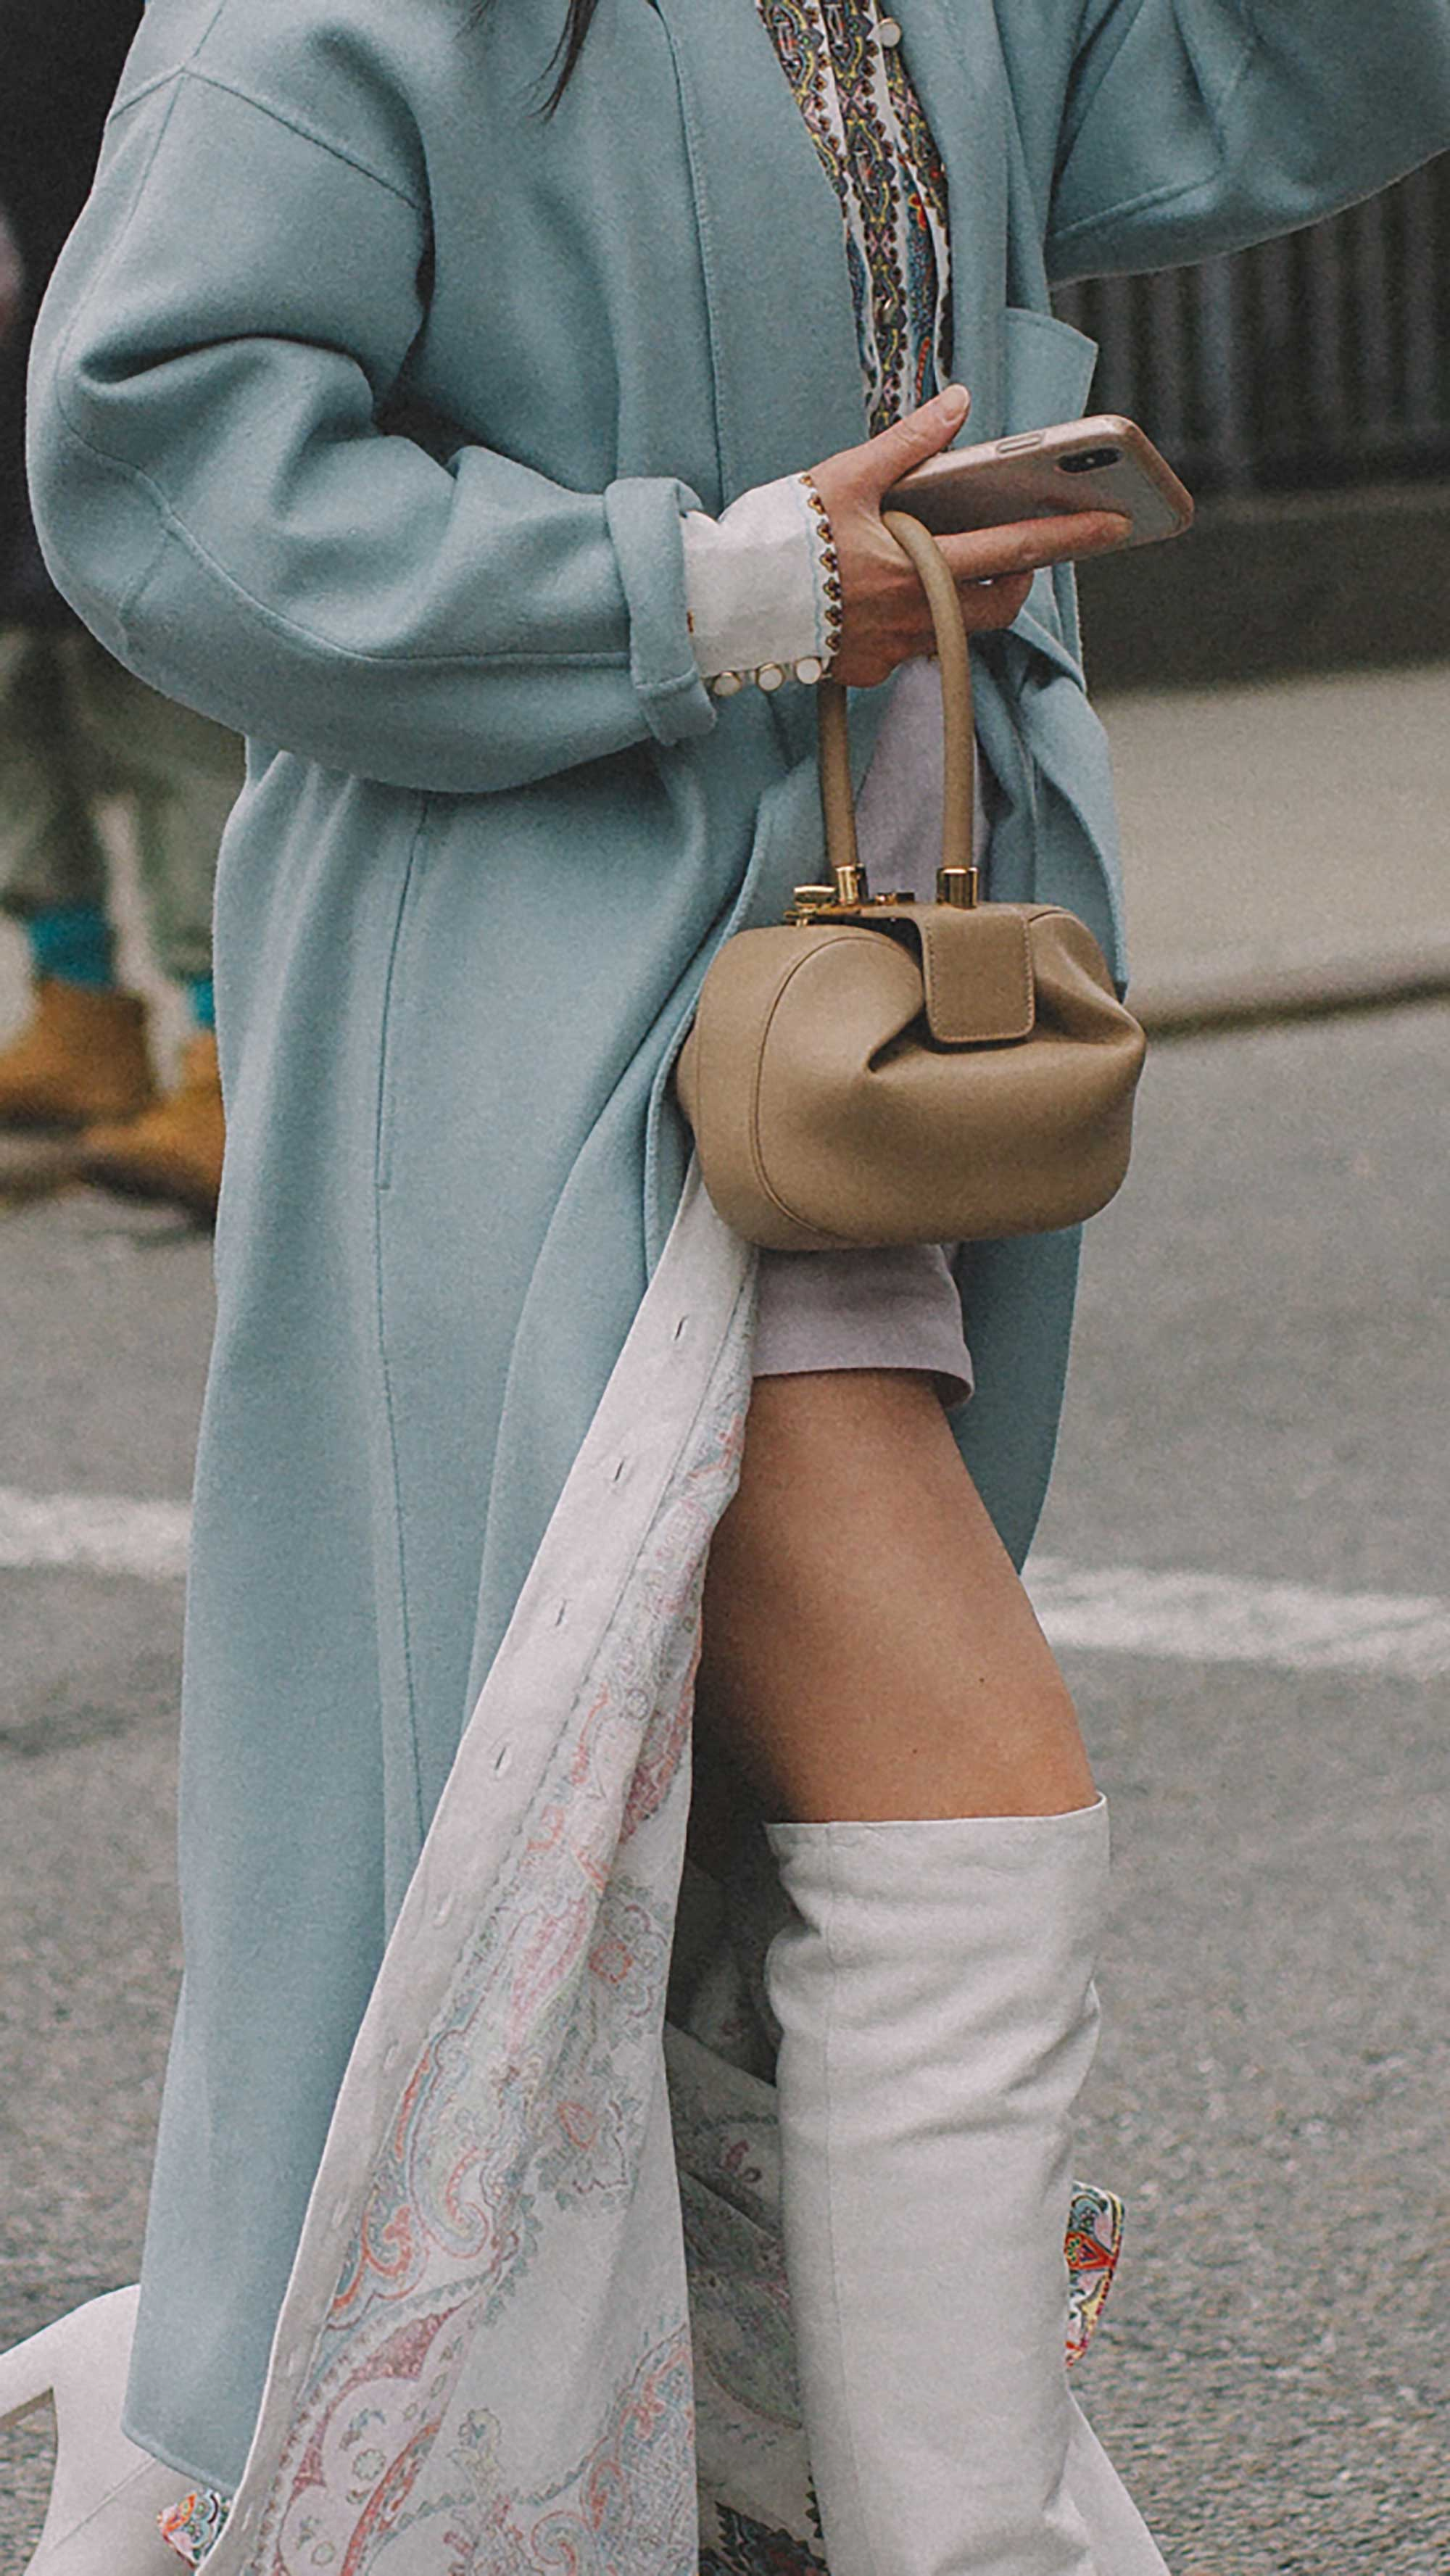 20 irresistible pastel outfit ideas for winter from New York Fashion Week street style2.jpg